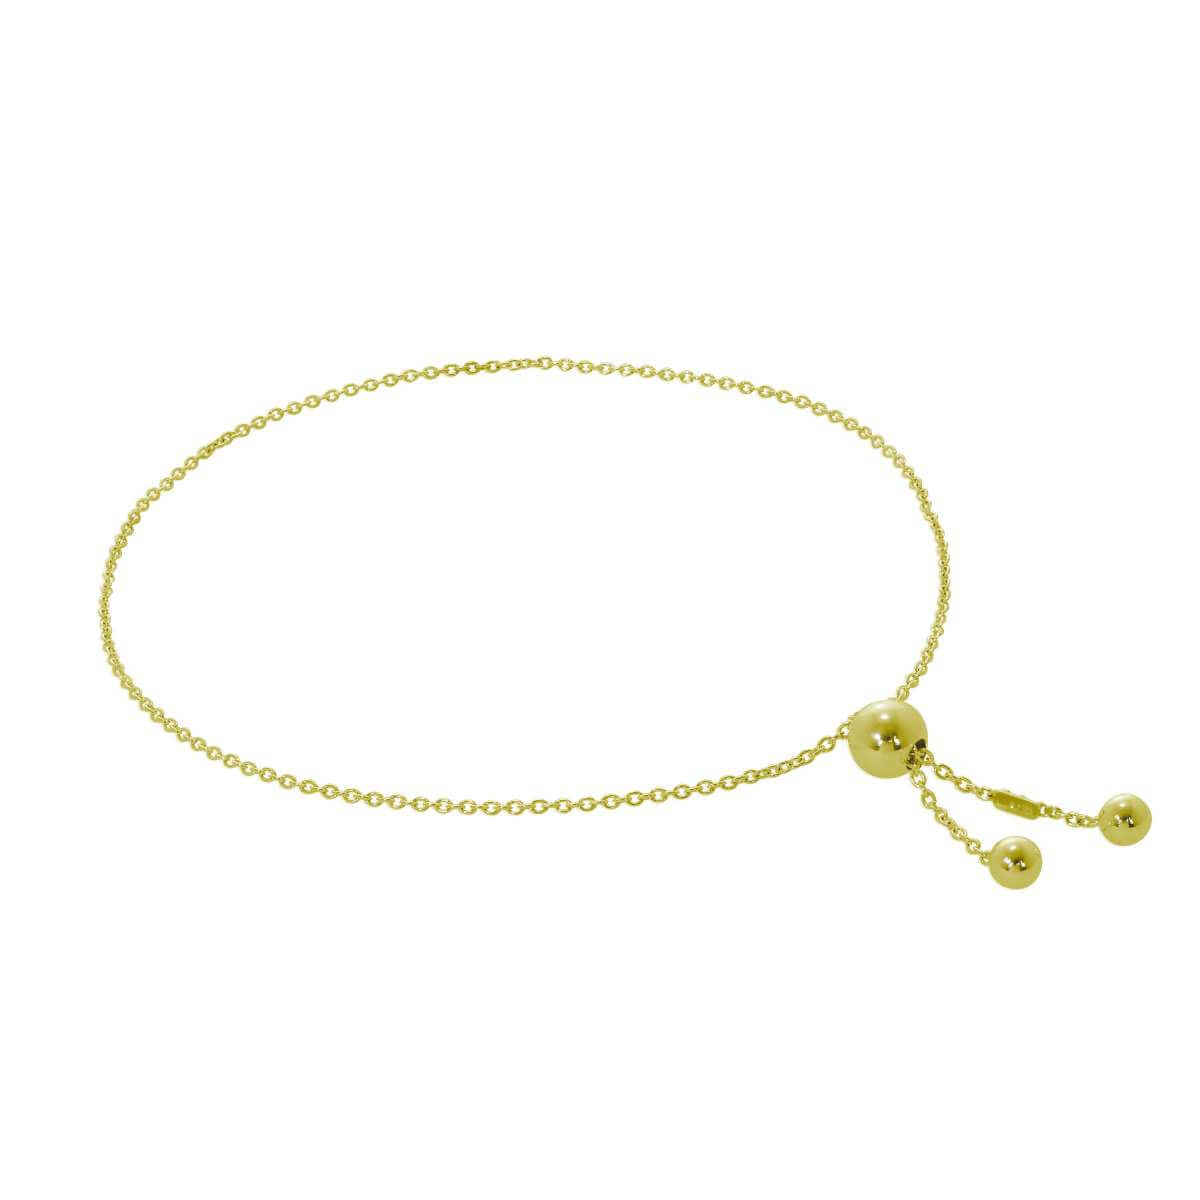 Gold Plated Sterling Silver Slider Ball Adjustable Bracelet